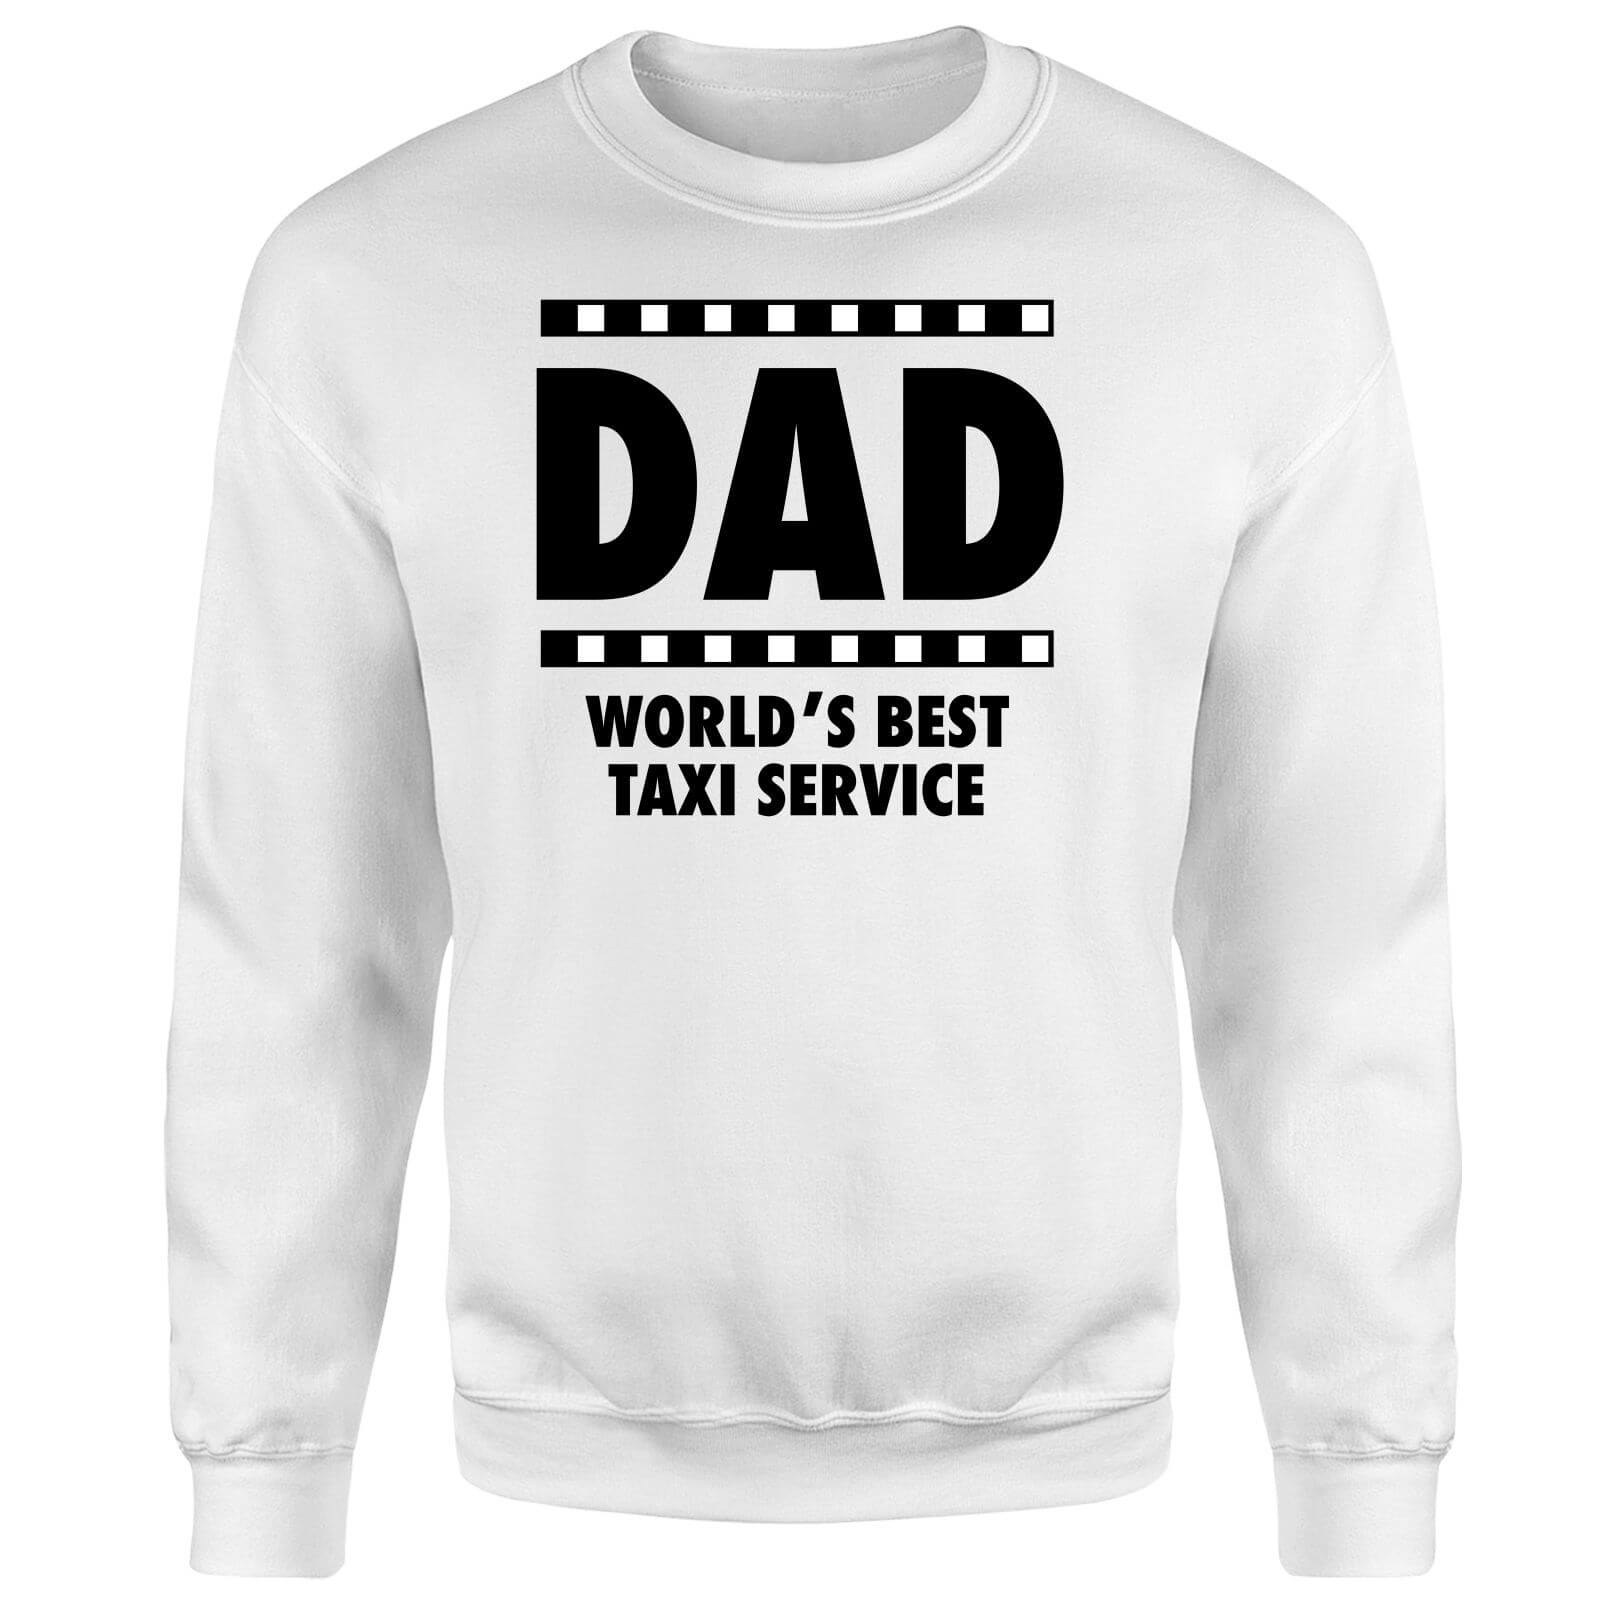 Dad Taxi Service Sweatshirt - White